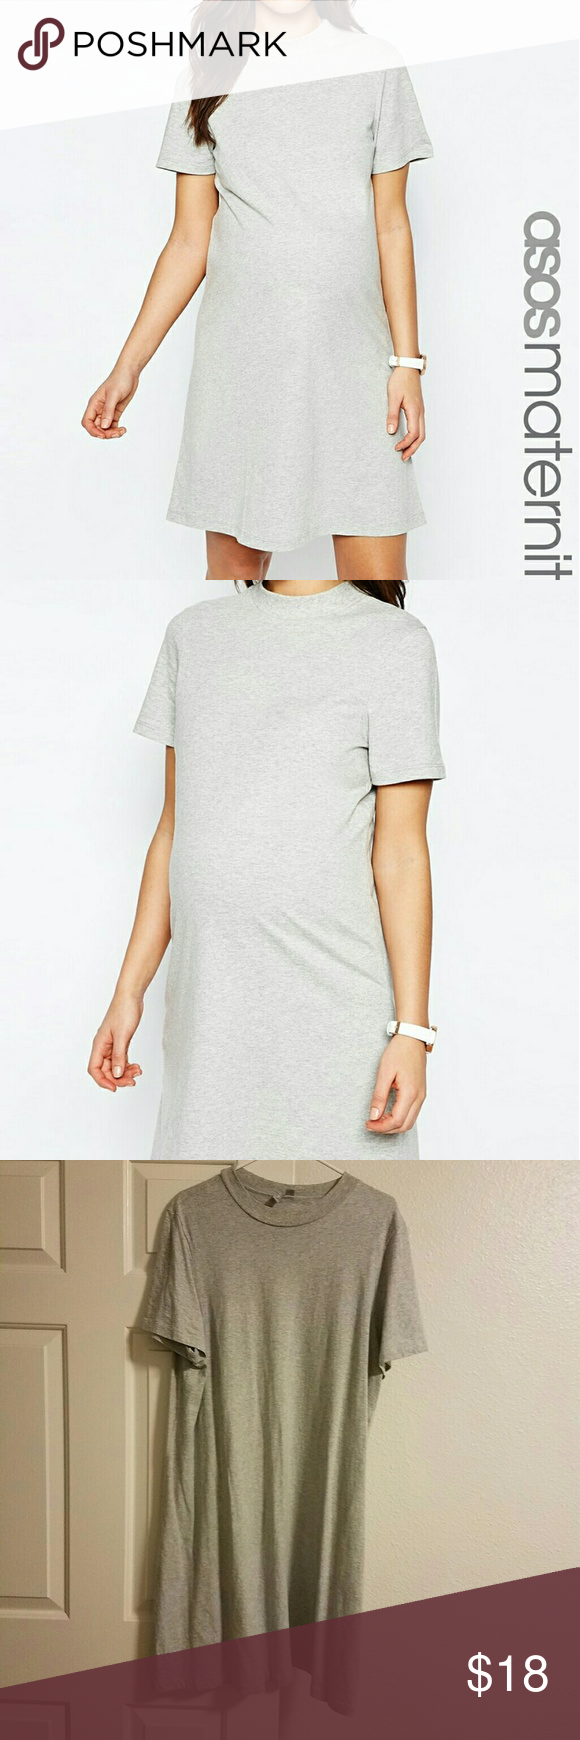 Asos maternity sweater dress maternity sweater dress maternity asos maternity sweater dress worn and washed once soft sweatshirt material maternity dress ombrellifo Image collections